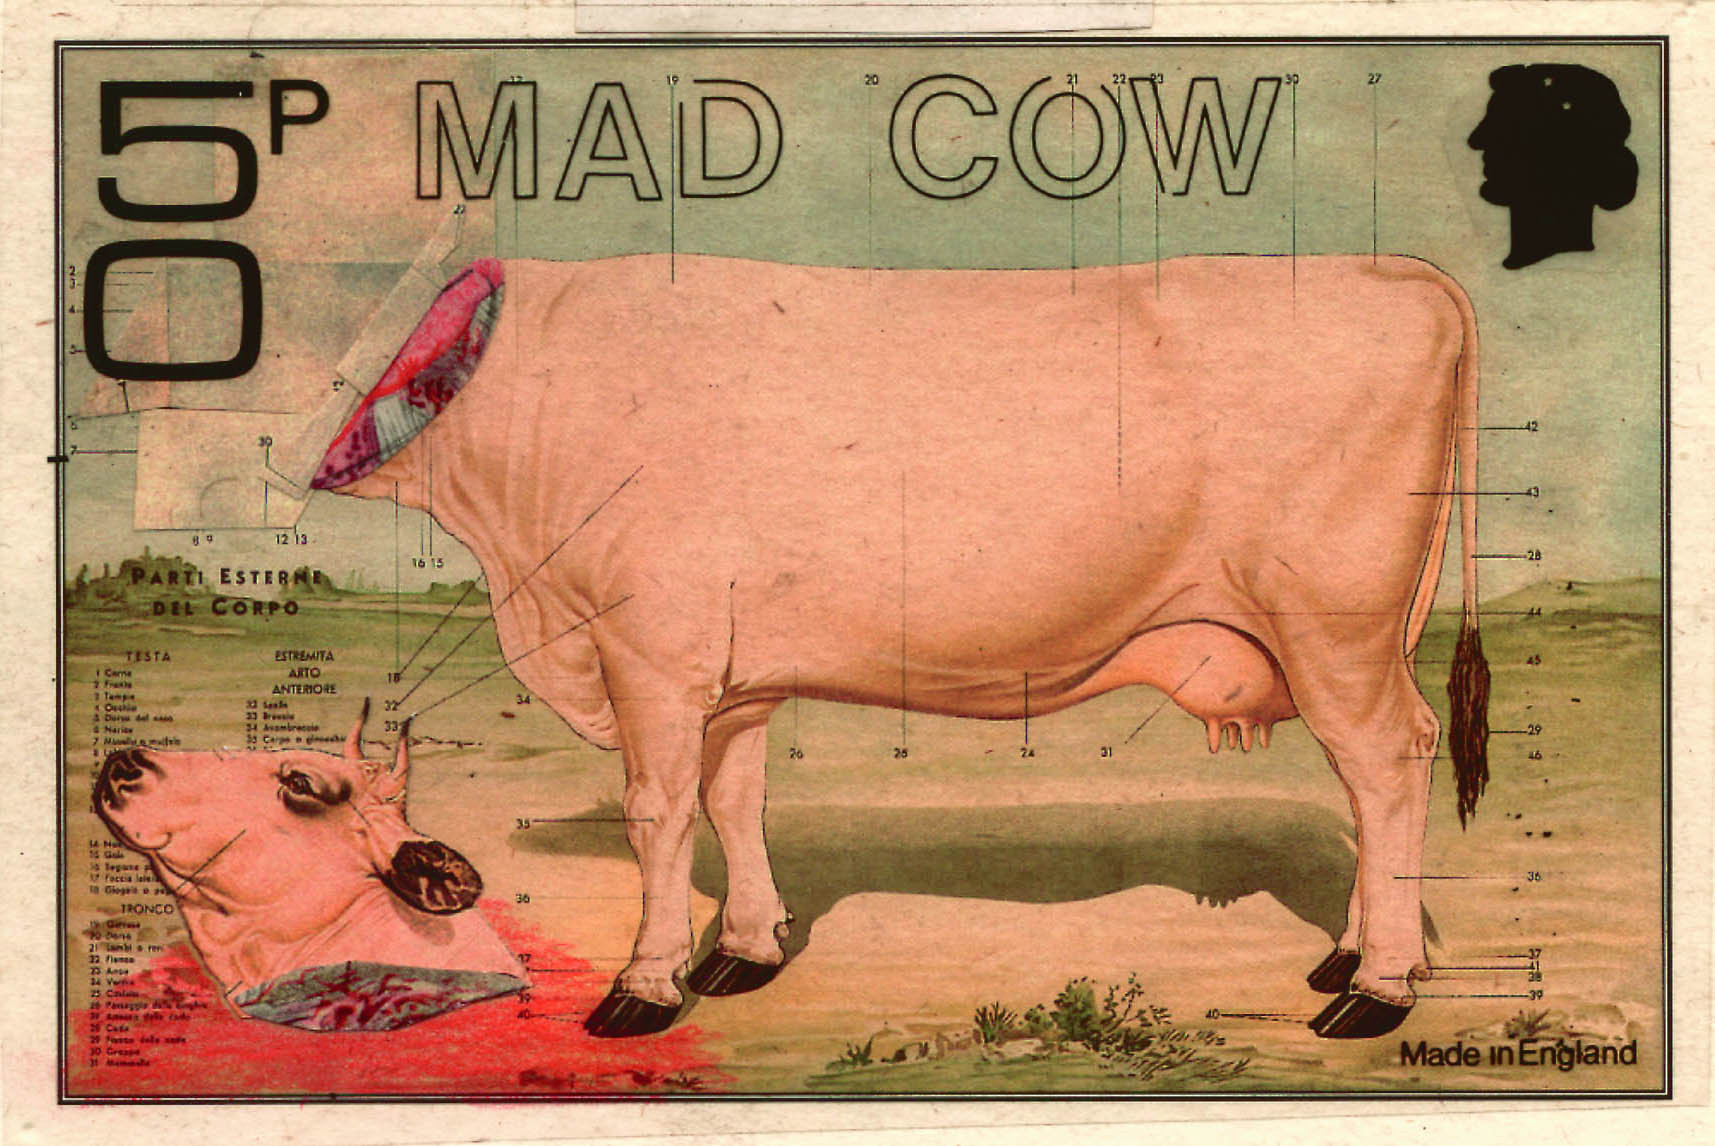 How the fear of Mad Cow Disease lives on